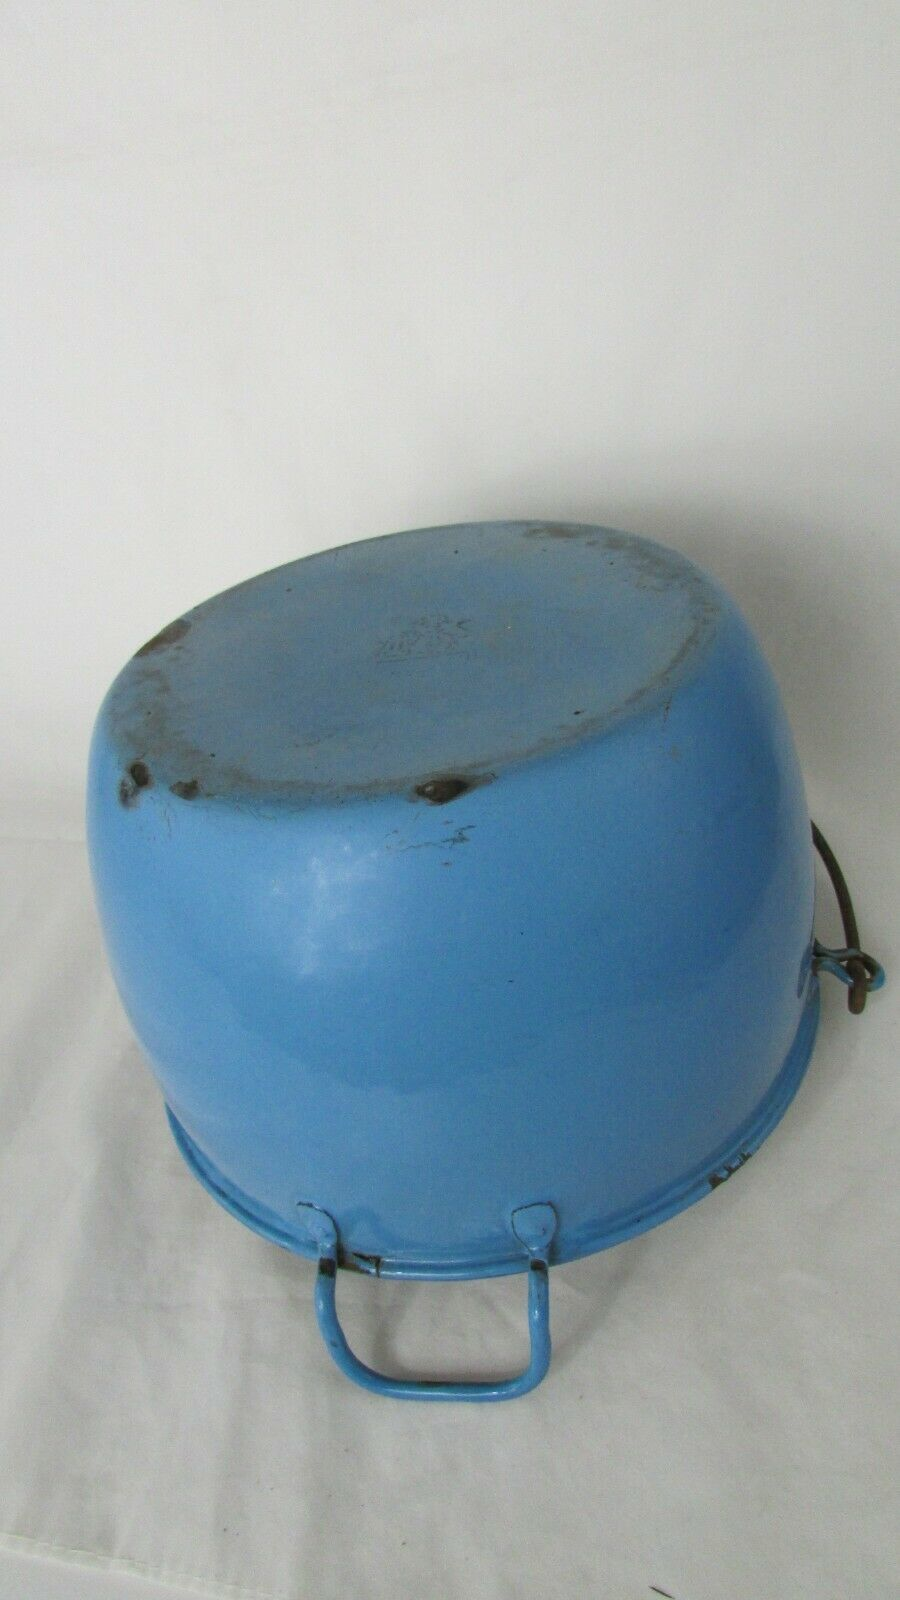 Vintage Enamel  Pail Bucket Blue and White Enamelware With Wooden Handle image 8